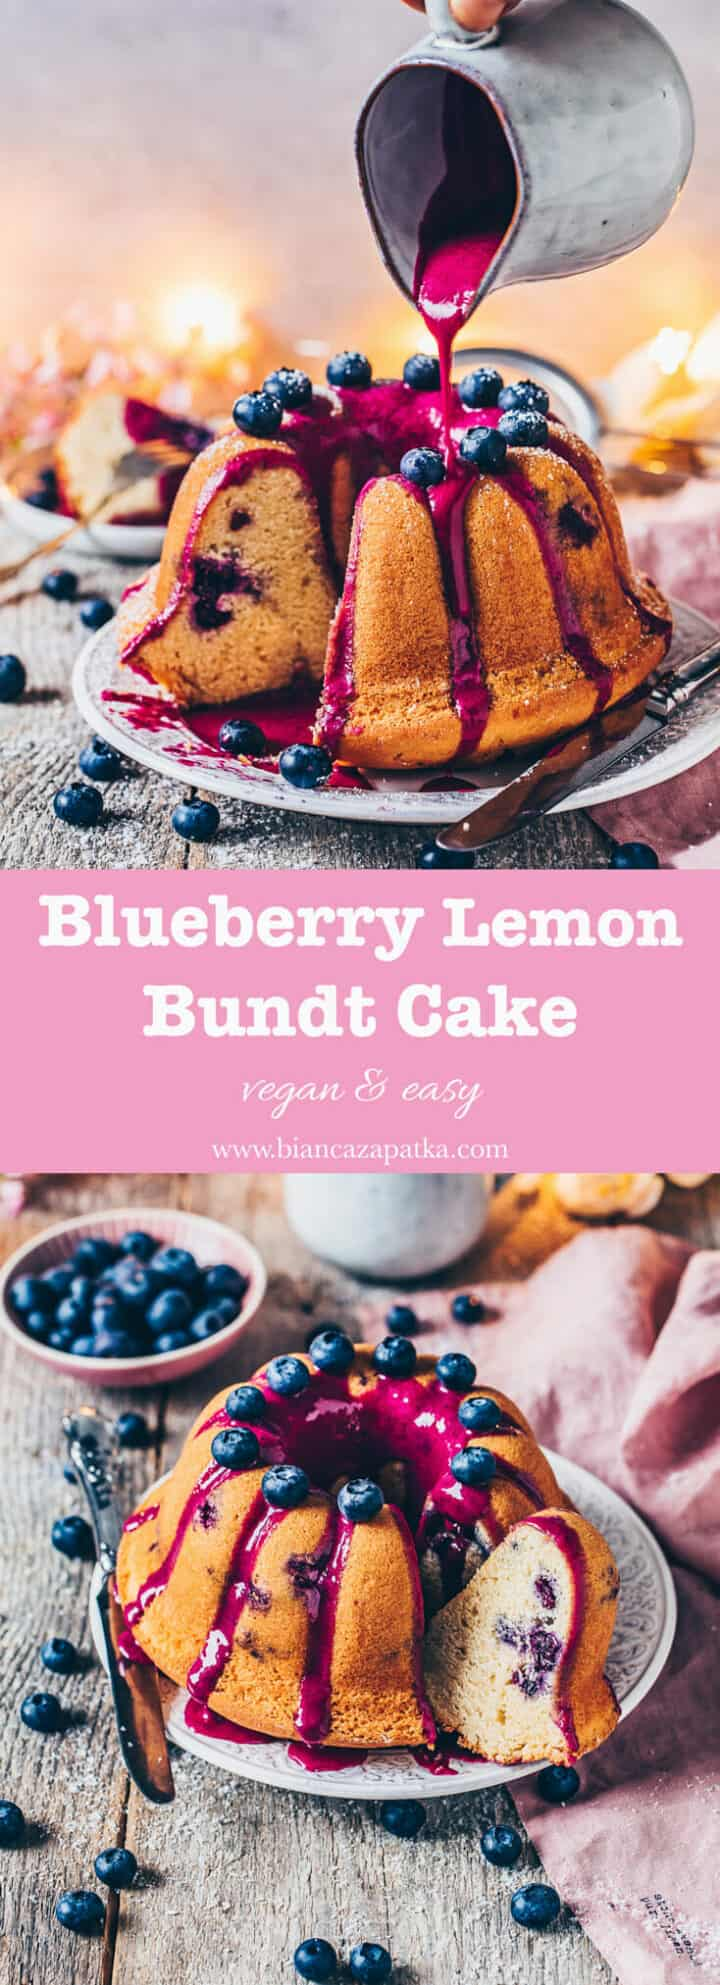 This Blueberry Bundt Cake is a fluffy vegan lemon cake with blueberries and a natural blueberry glaze! This recipe is quick and easy and makes the perfect simple dessert for any tea or coffee party!